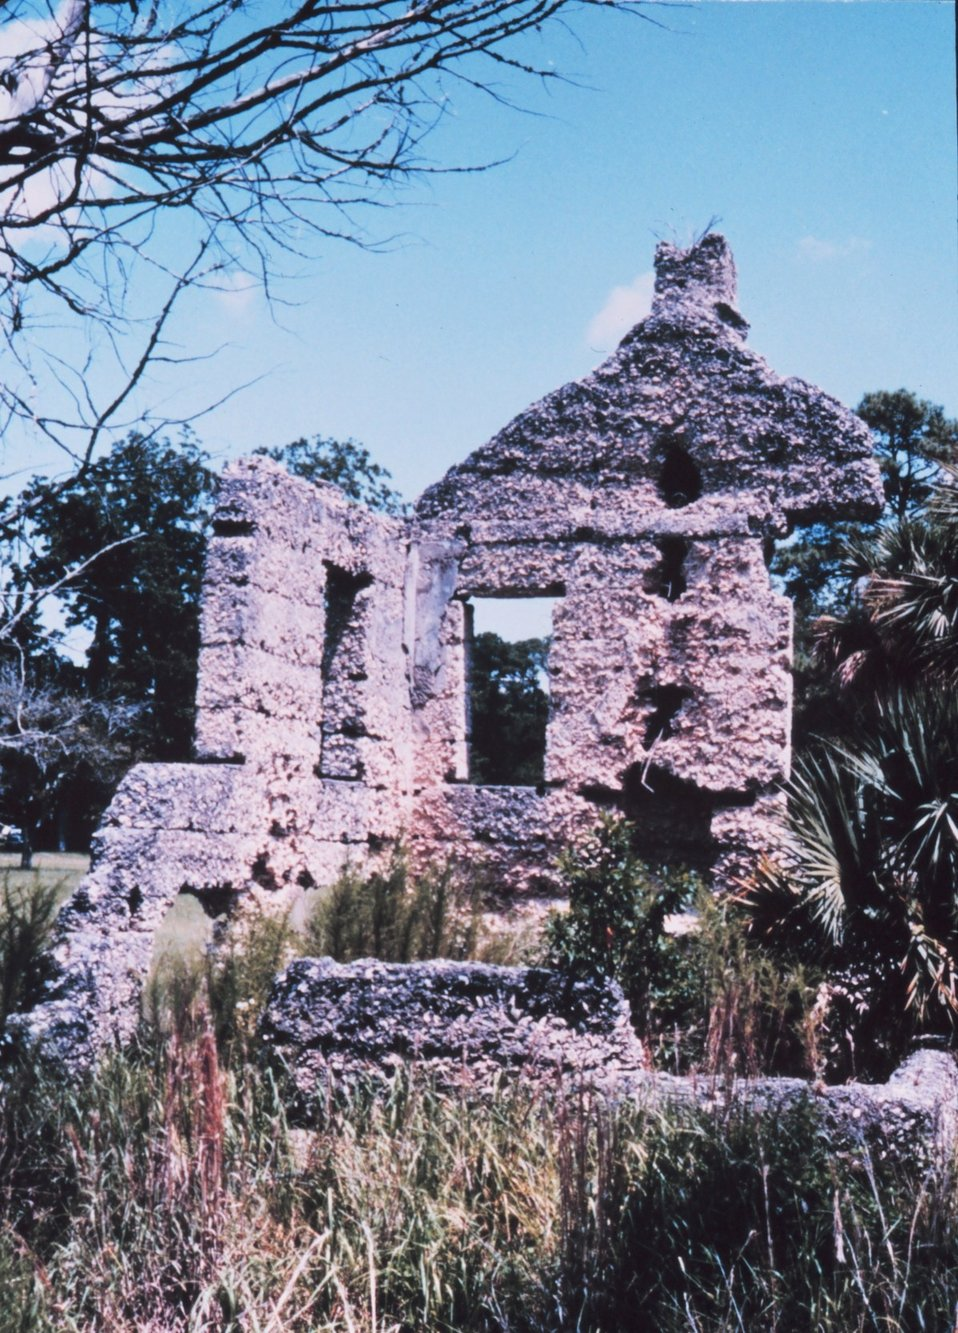 Tabby ruins at Chocolate on the northwest side of the island. Tabby refers to the building material which is a durable cement-like mixture of equal parts of water, sand, shell, and lime. These ruins are part of an antebellum plantation that was deserted